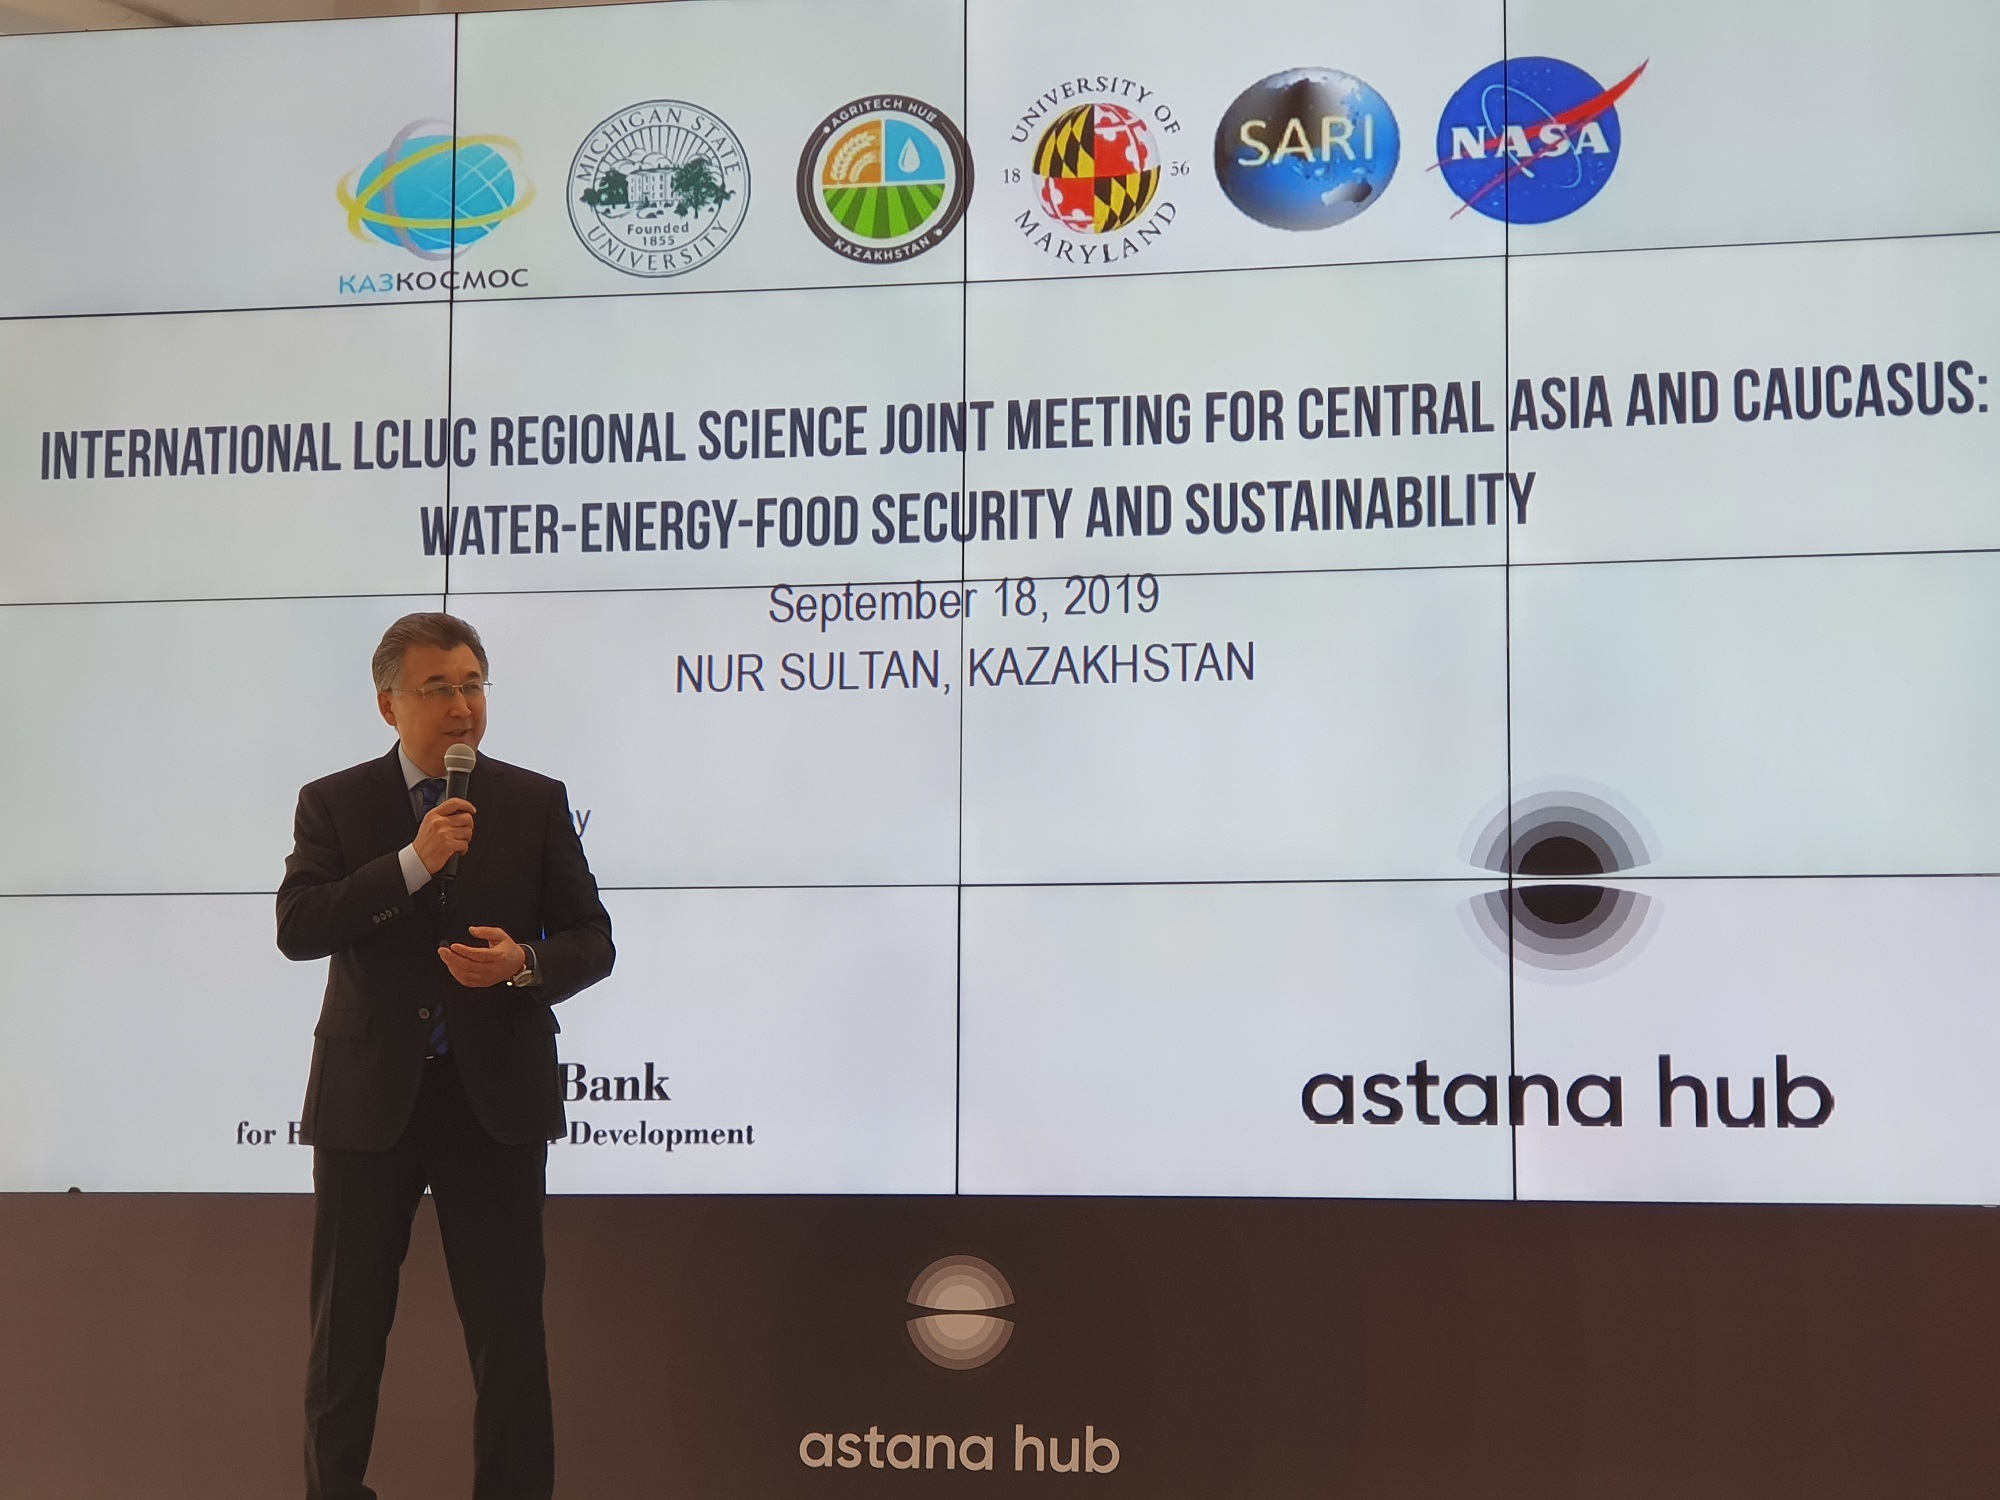 NASA information center likely to be opened in Kazakhstan